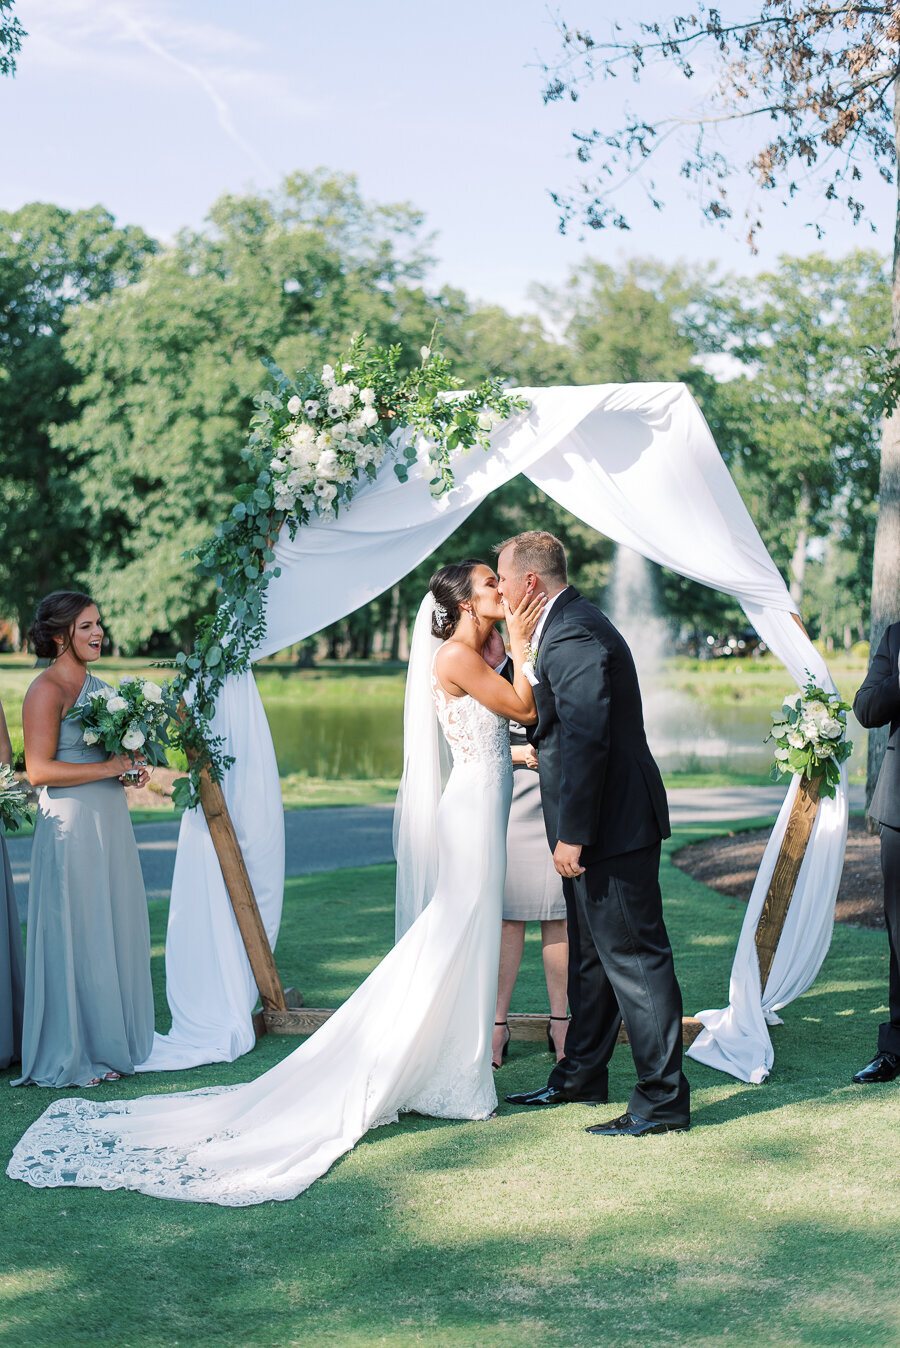 Prospect_Bay_Country_Club_Wedding_Maryland_Megan_Harris_Photography-33